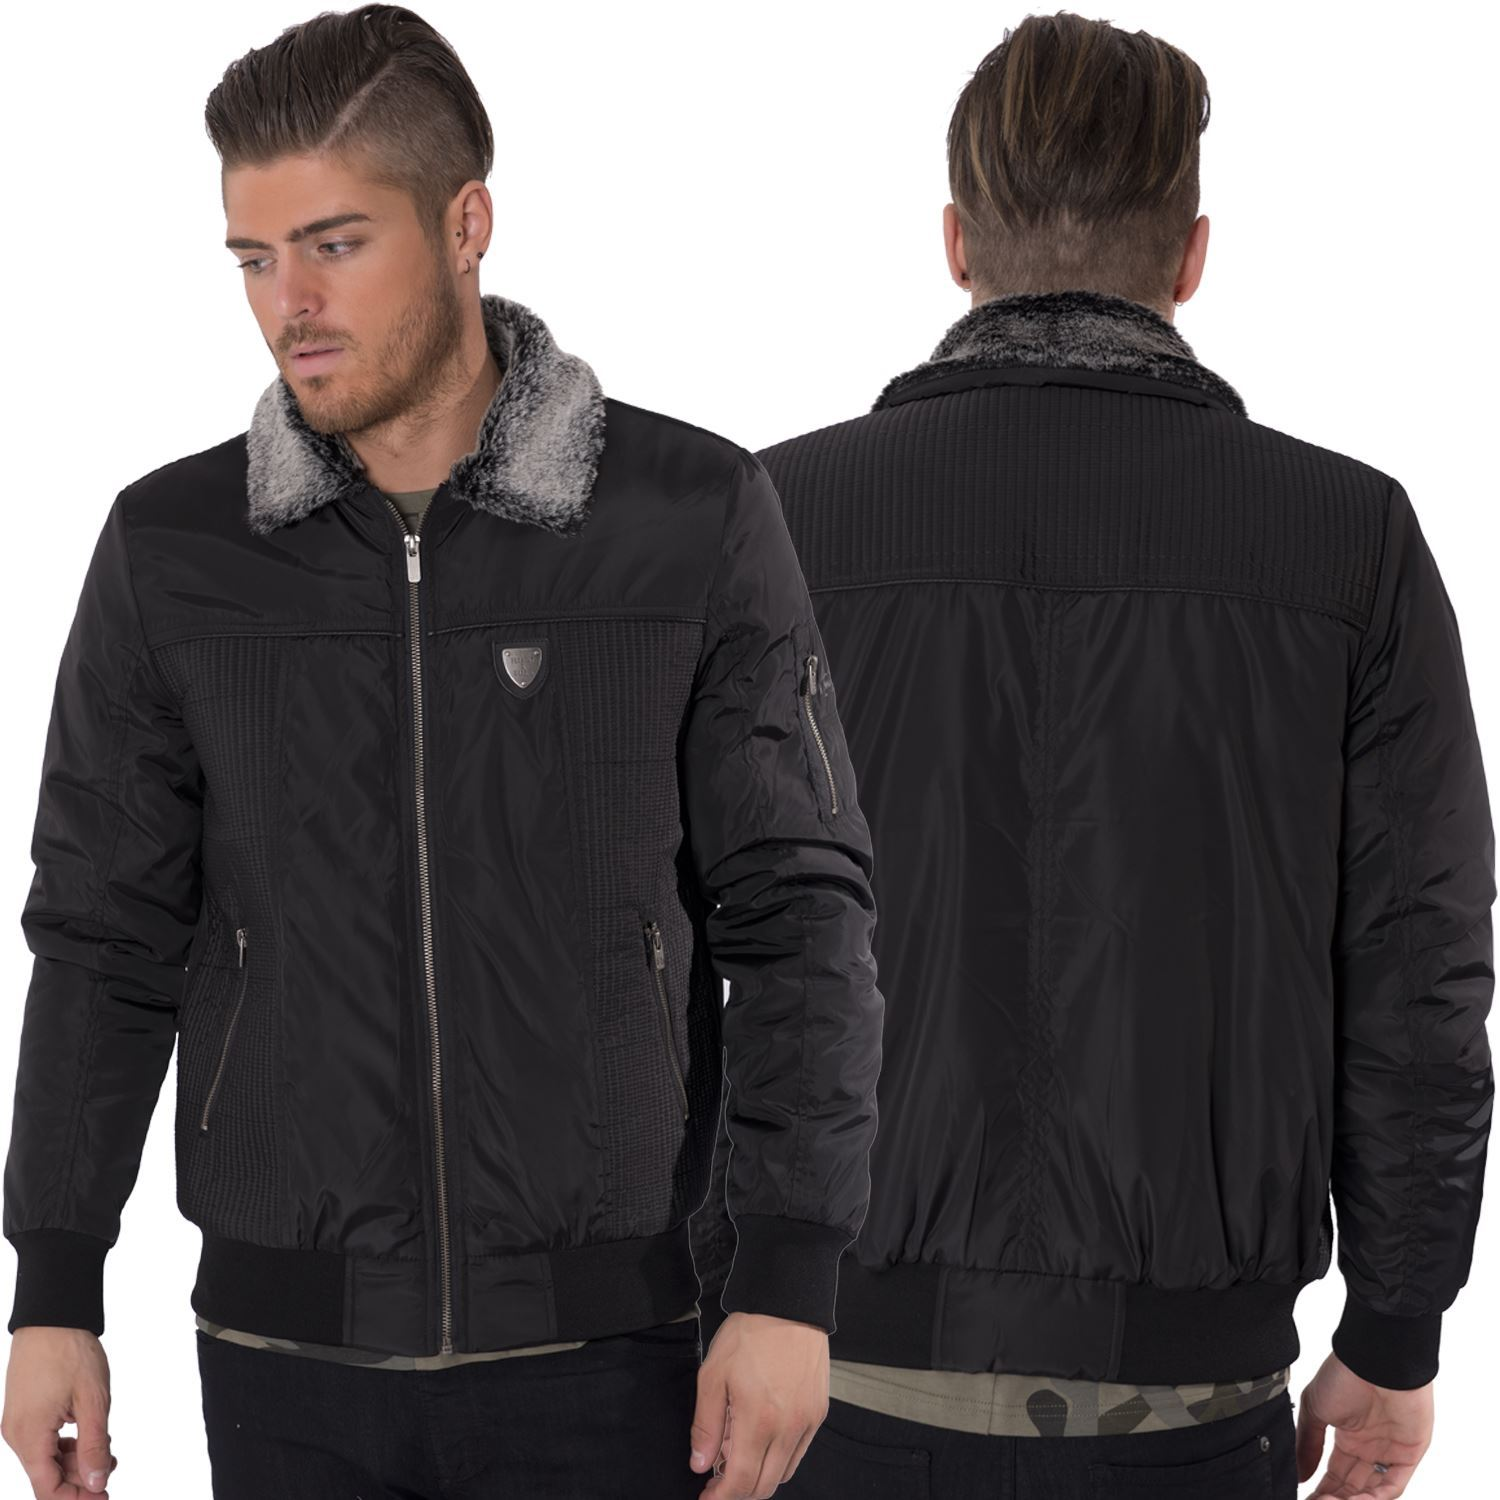 Men s jackets with fur collar